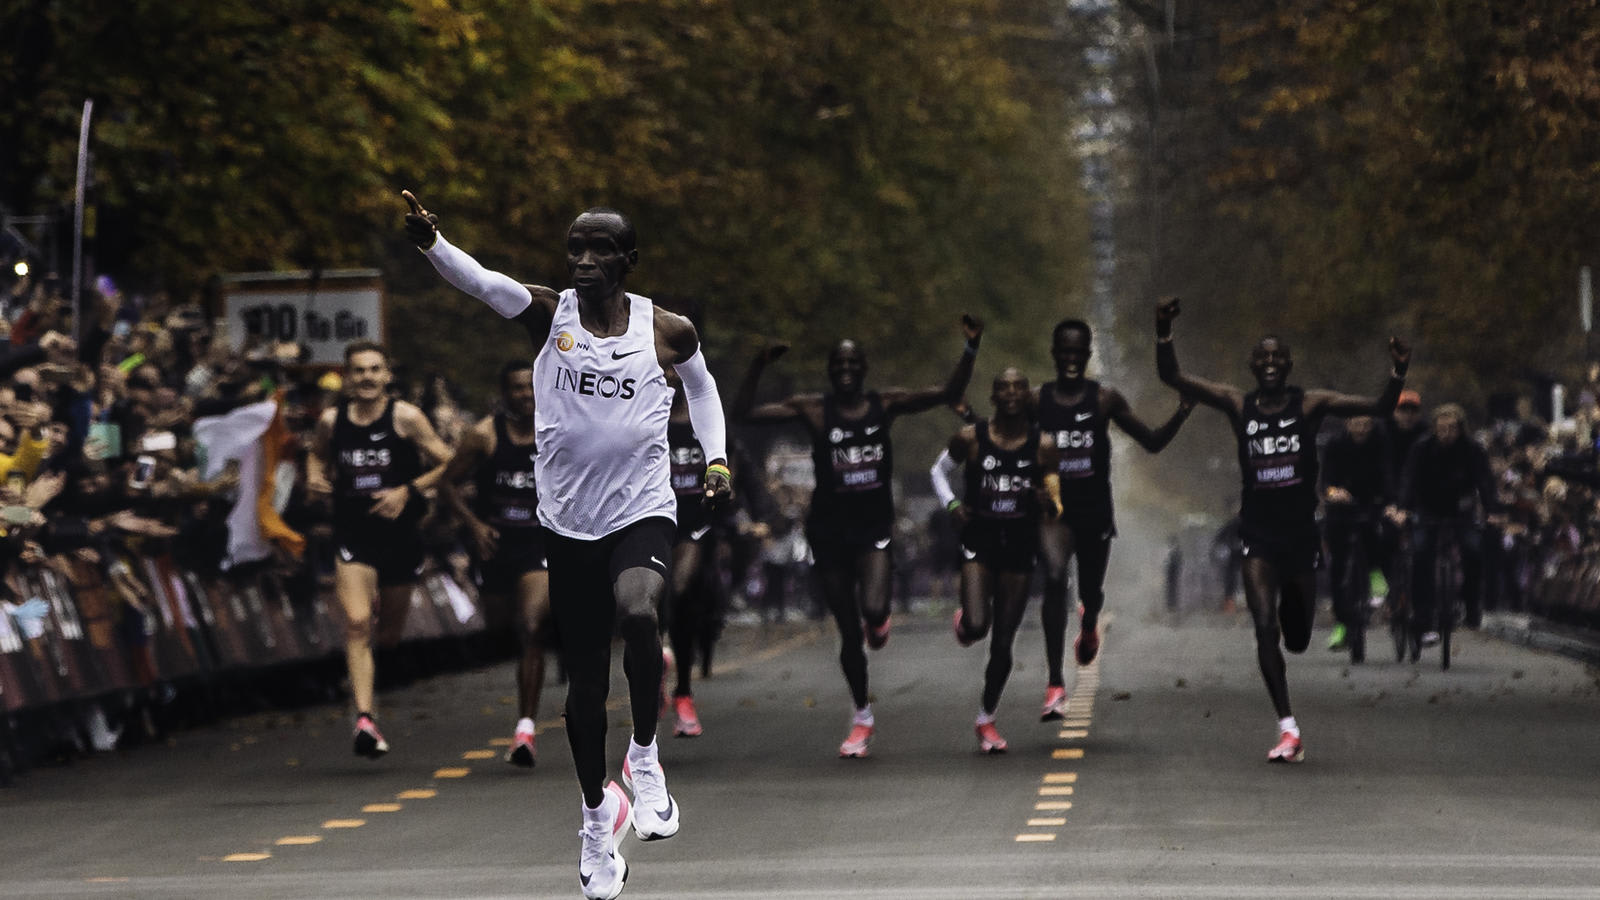 Eliud Kipchoge Wears the Nike Next% Prototype